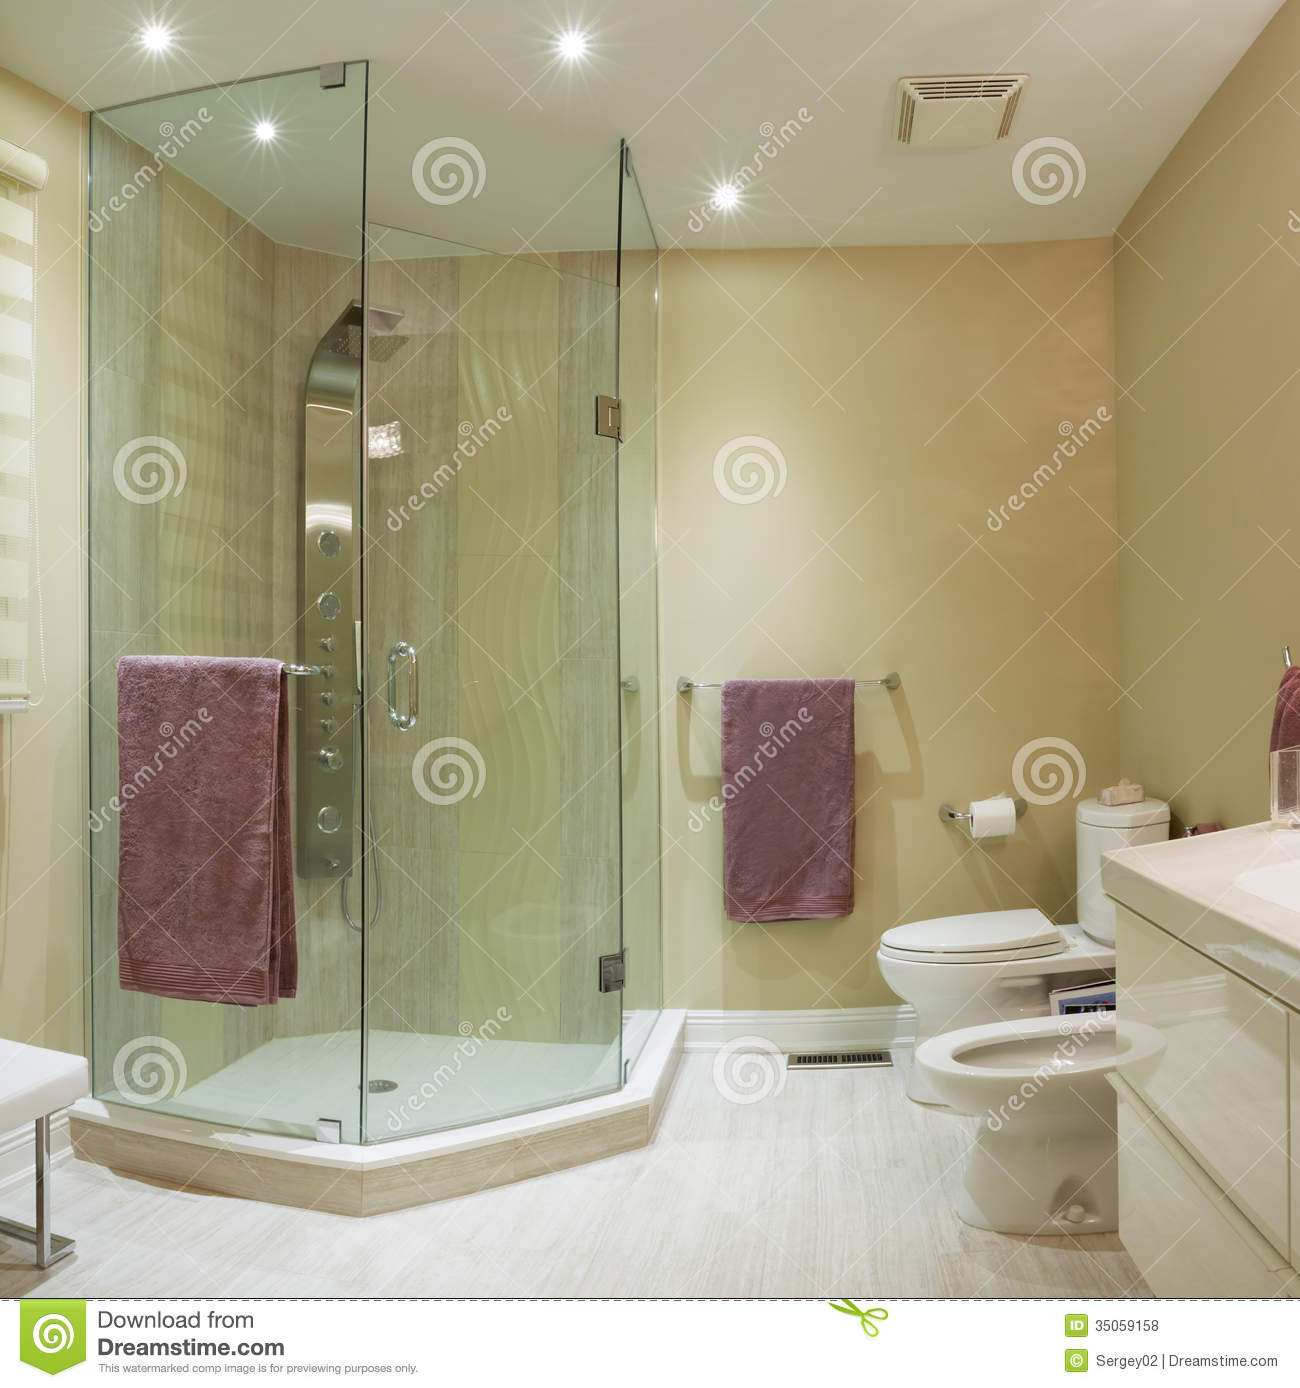 New Home Designs Latest Modern Homes Modern Bathrooms: Interior Design Stock Photo. Image Of Floor, Household